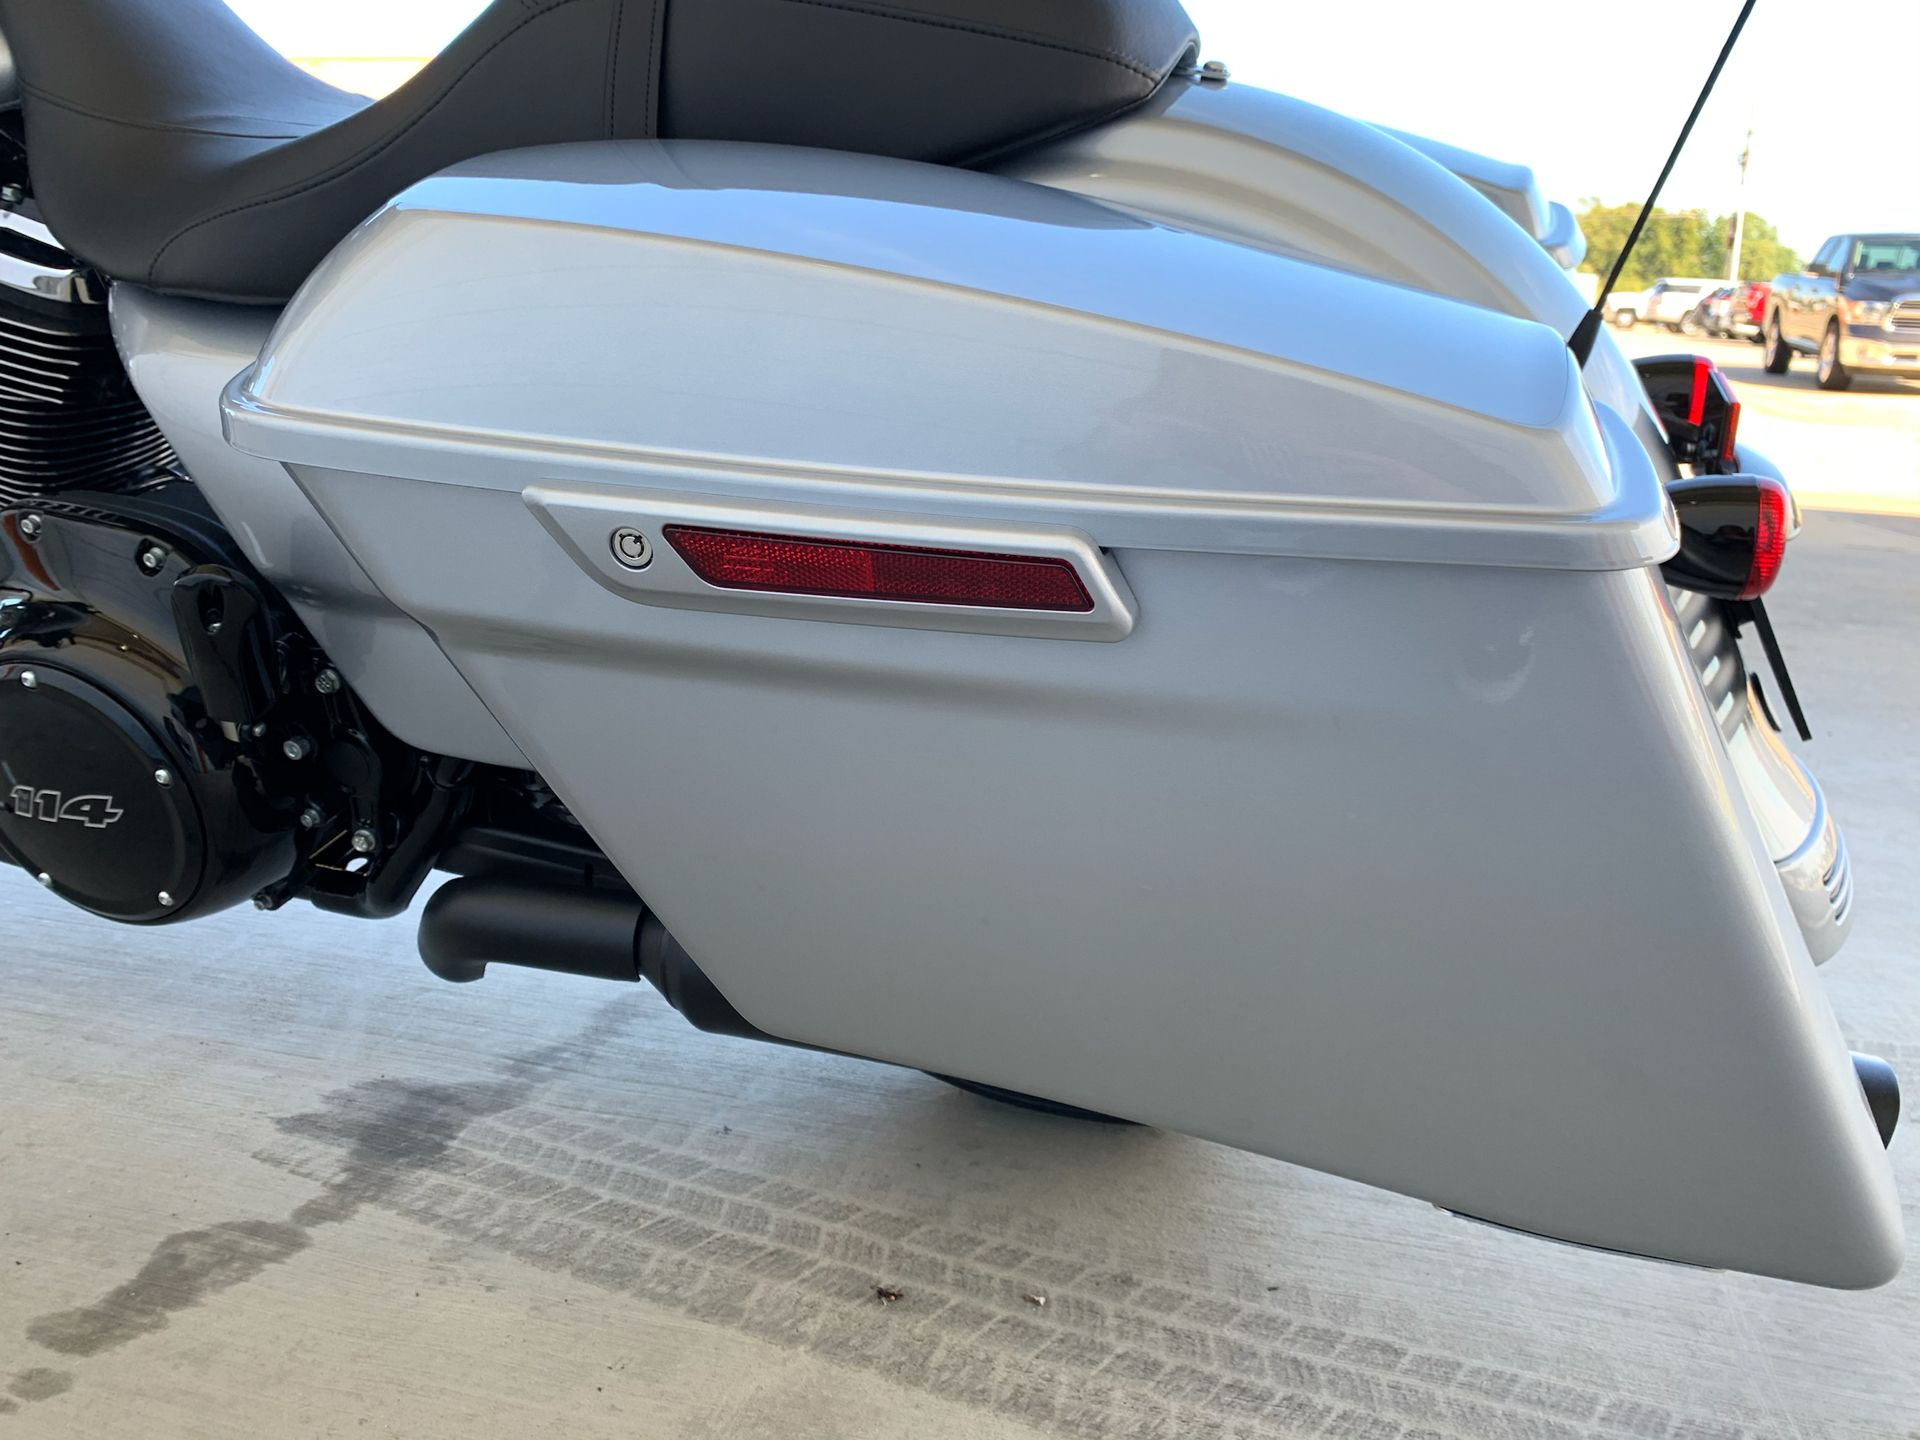 2019 Harley-Davidson Street Glide® Special in Monroe, Louisiana - Photo 10